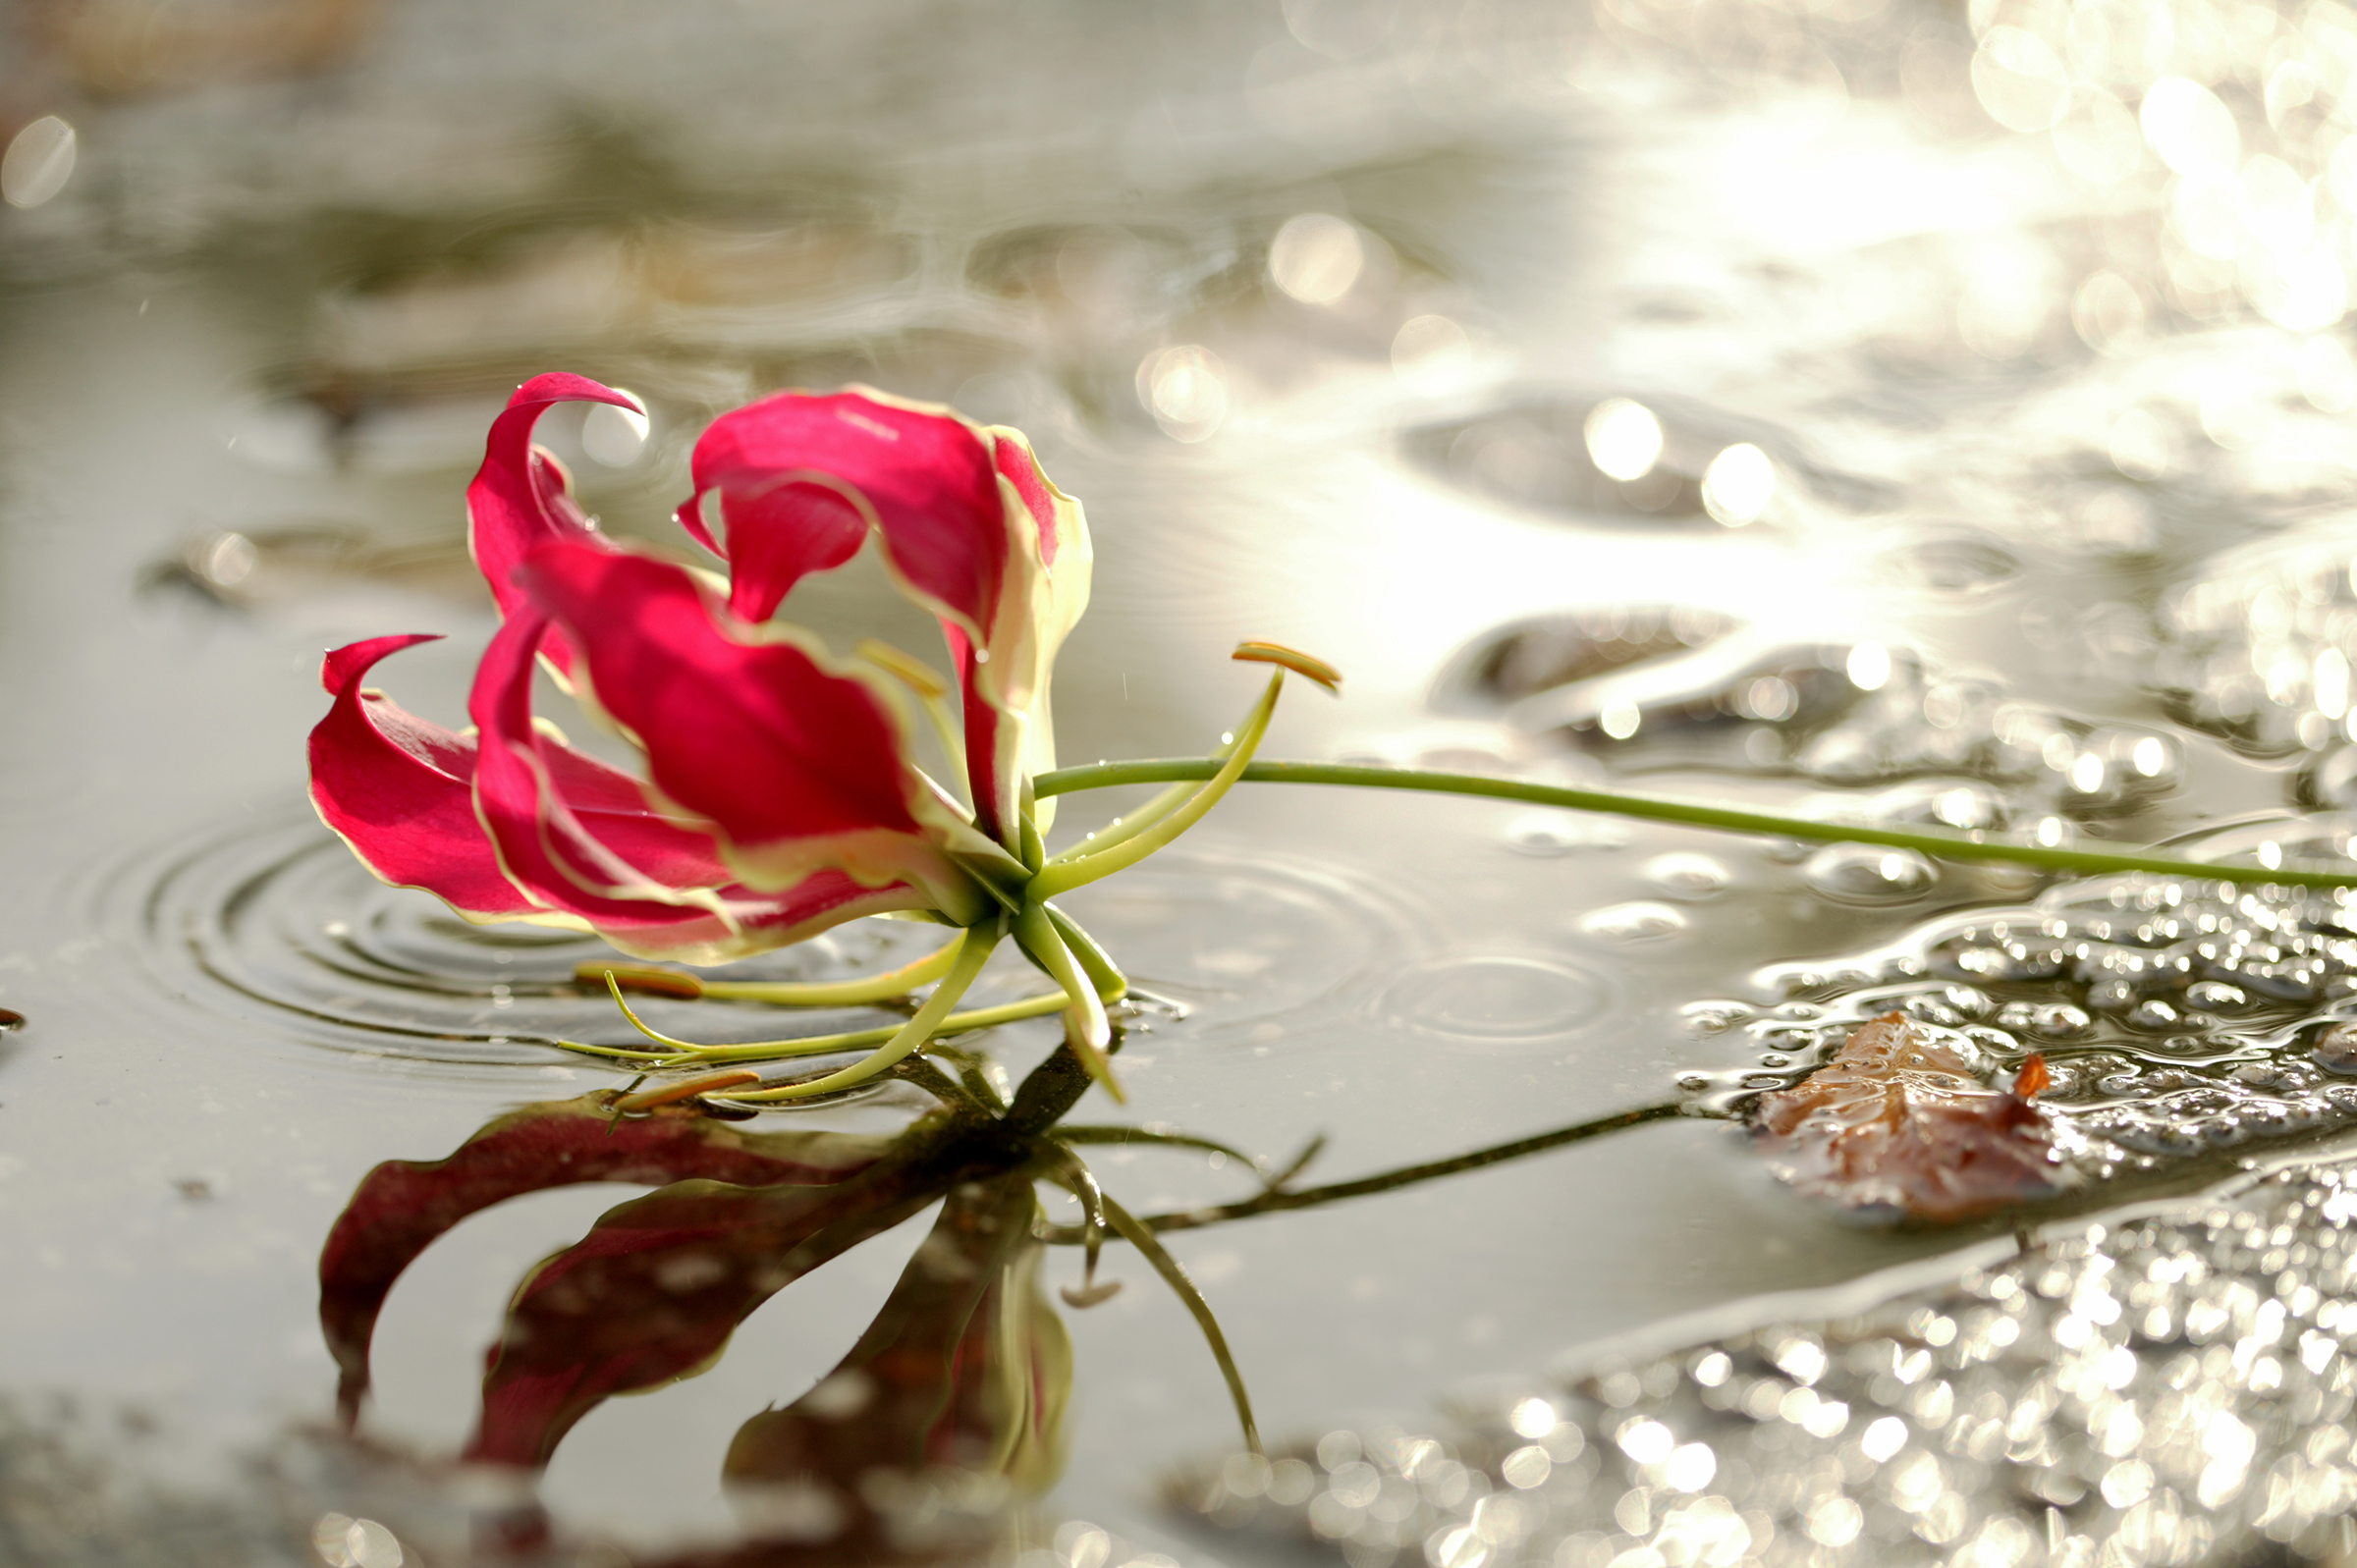 Flower in puddle.jpg